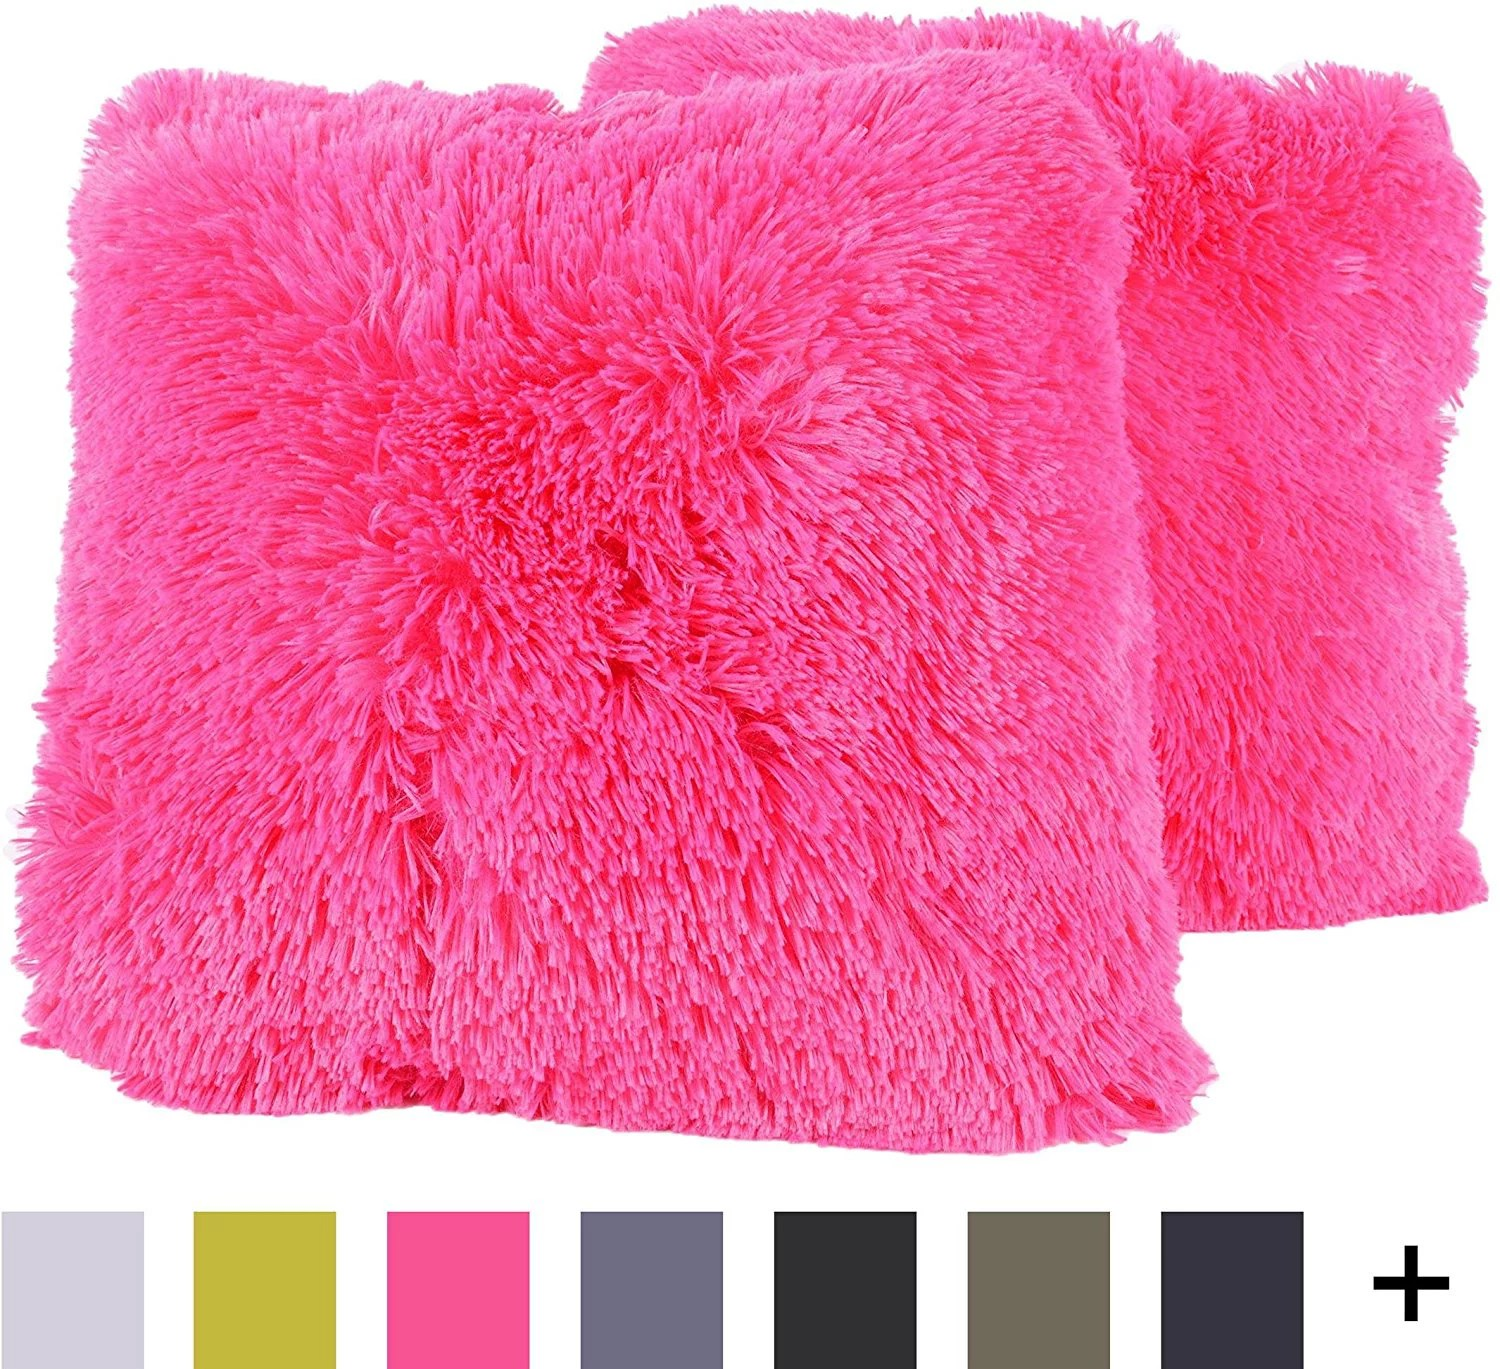 plush pillow faux fur soft and comfy throw pillow pack of 2 hot pink plush and fuzzy long faux fur on both sides by sweet home collection usa